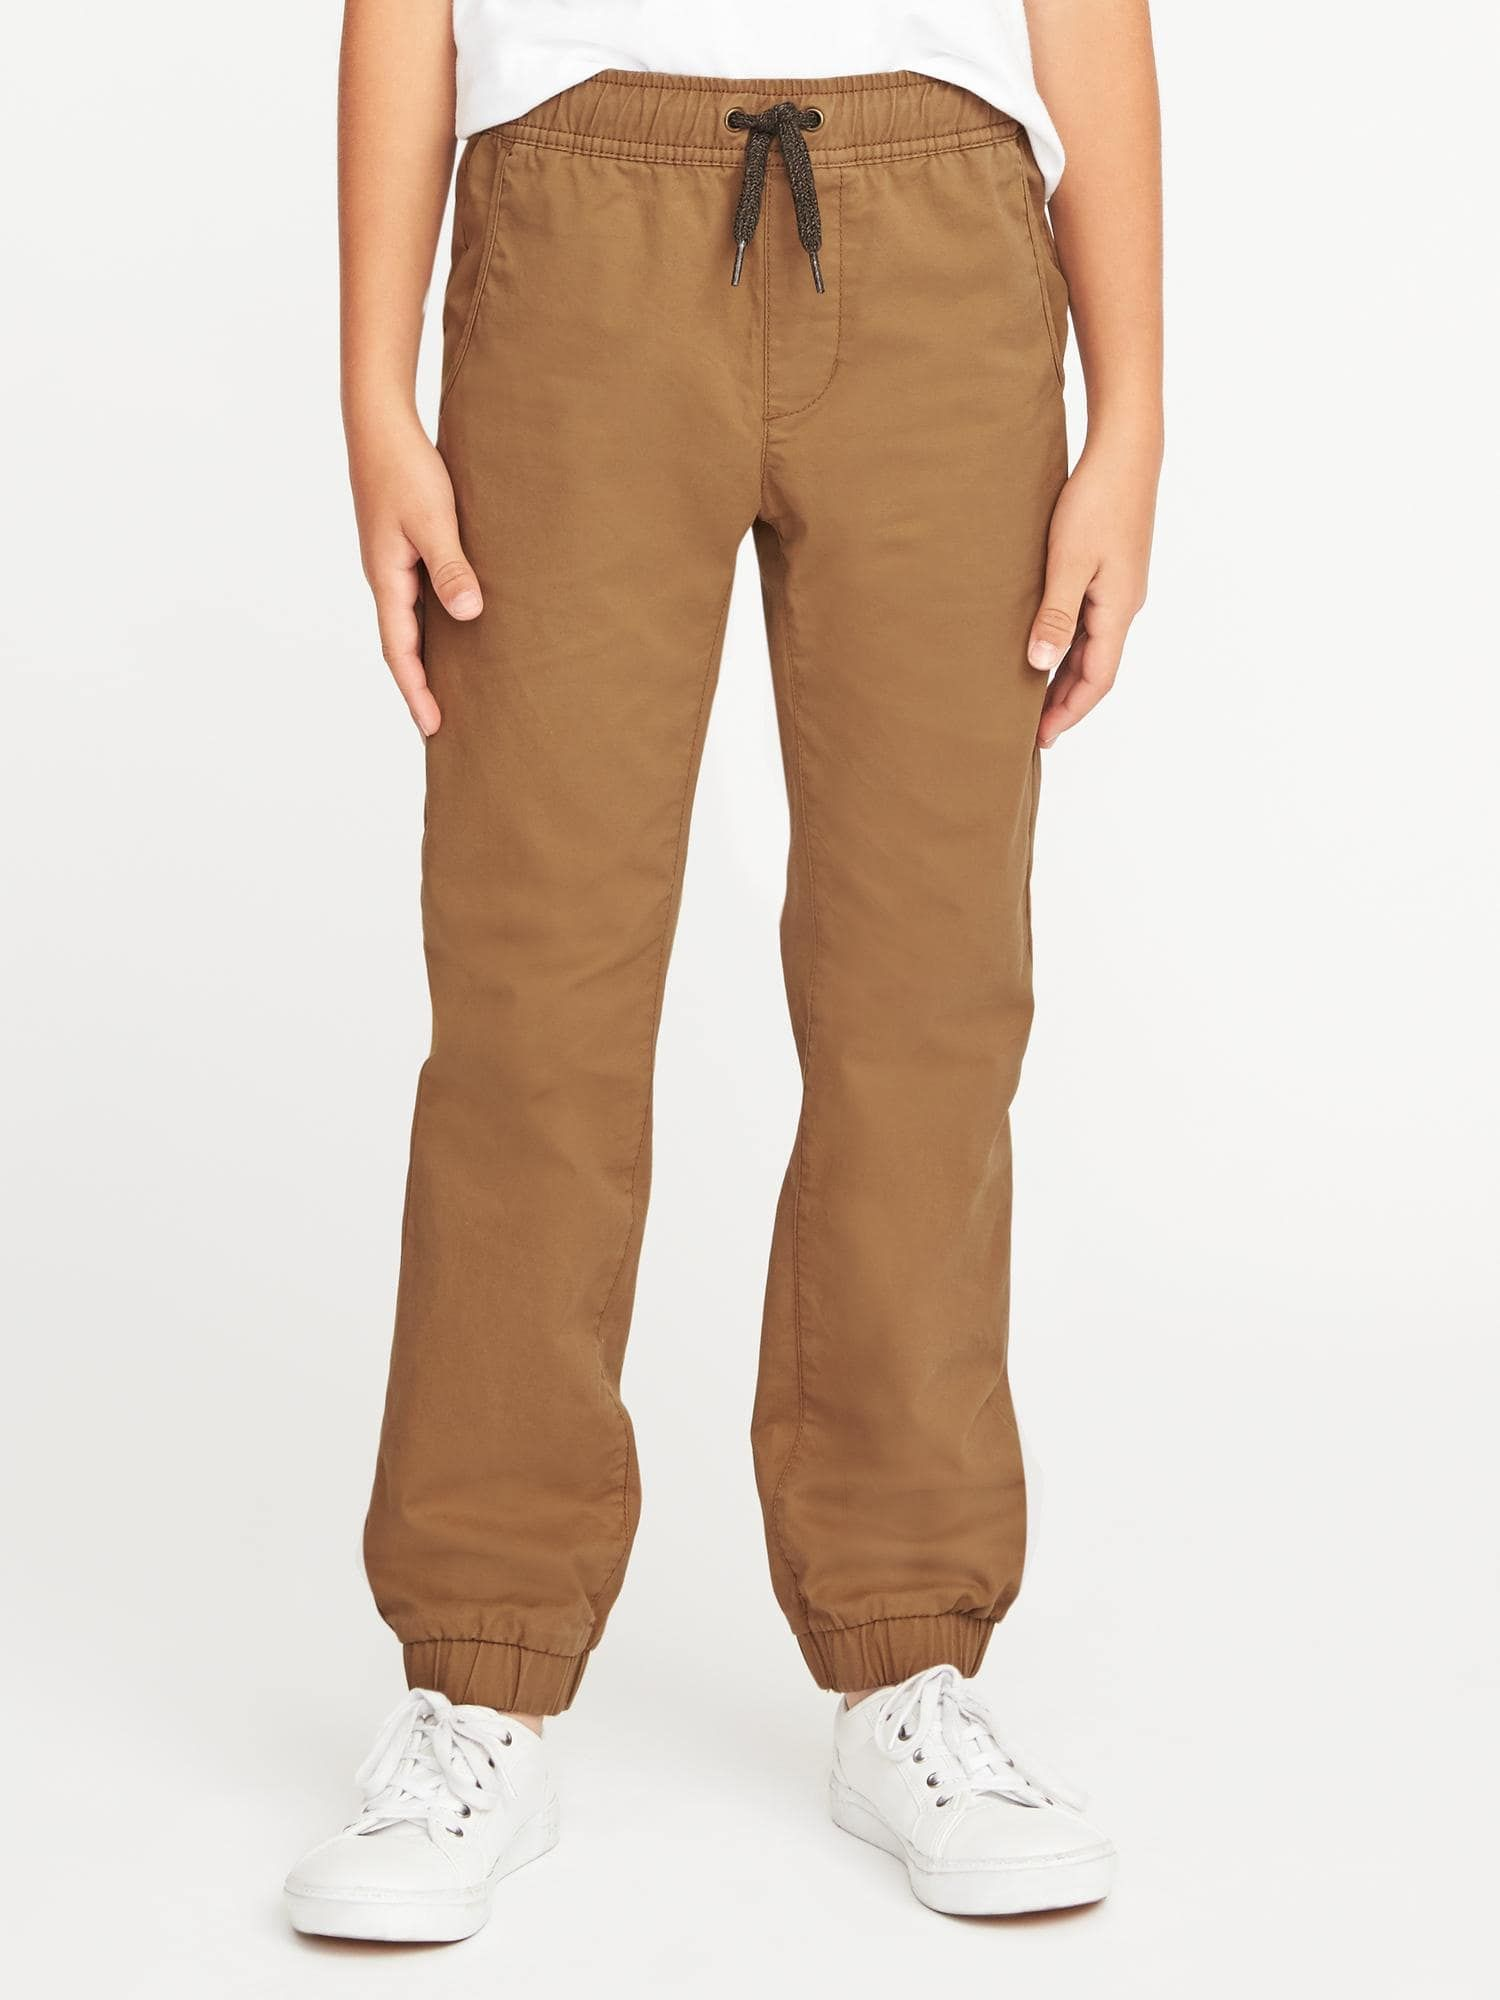 Clearance Sale Old Navy School Built-In Flex Twill Jogger Shorts for Boys!